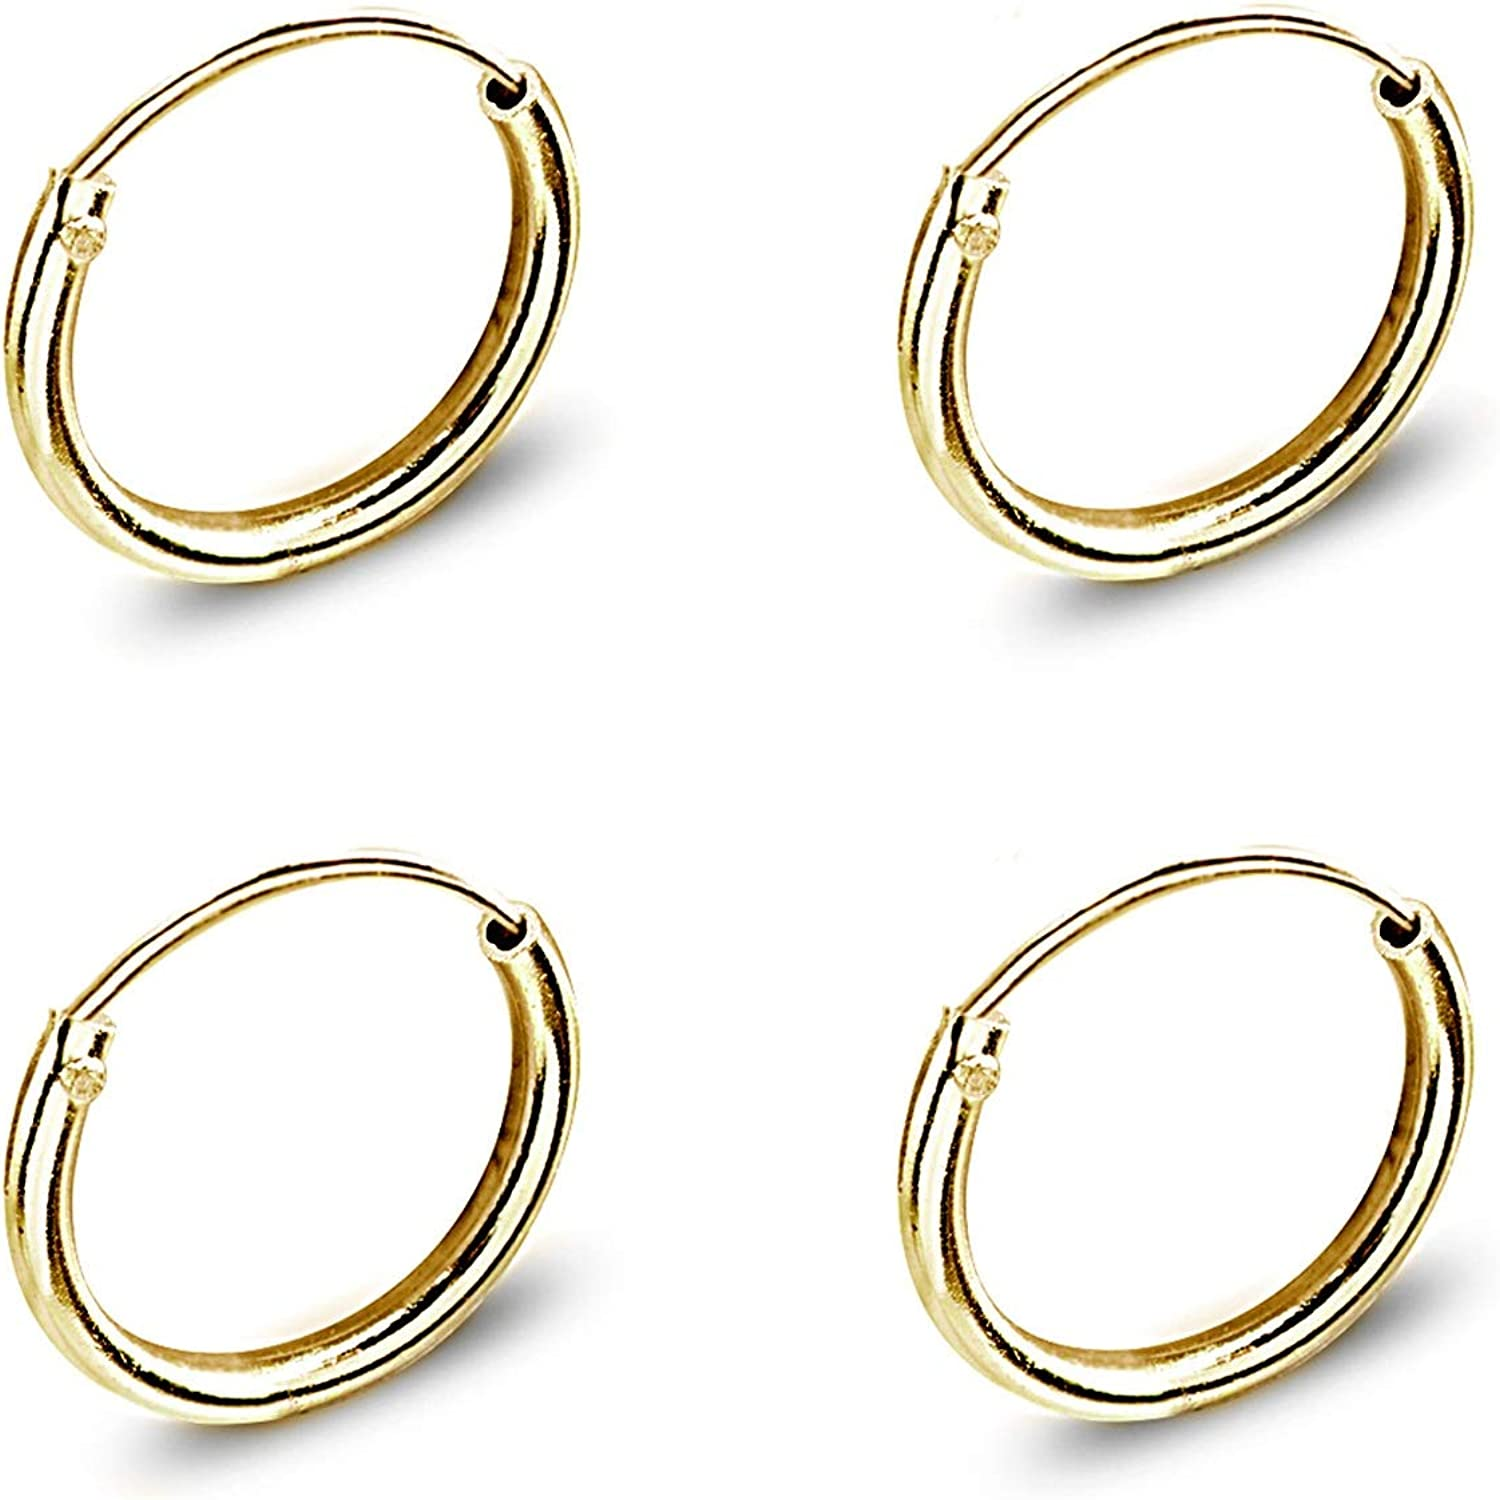 Set of 2 Gold Flash Sterling Silver Small Endless 10mm Thin Round Cartilage Hoop Earrings for Women Men